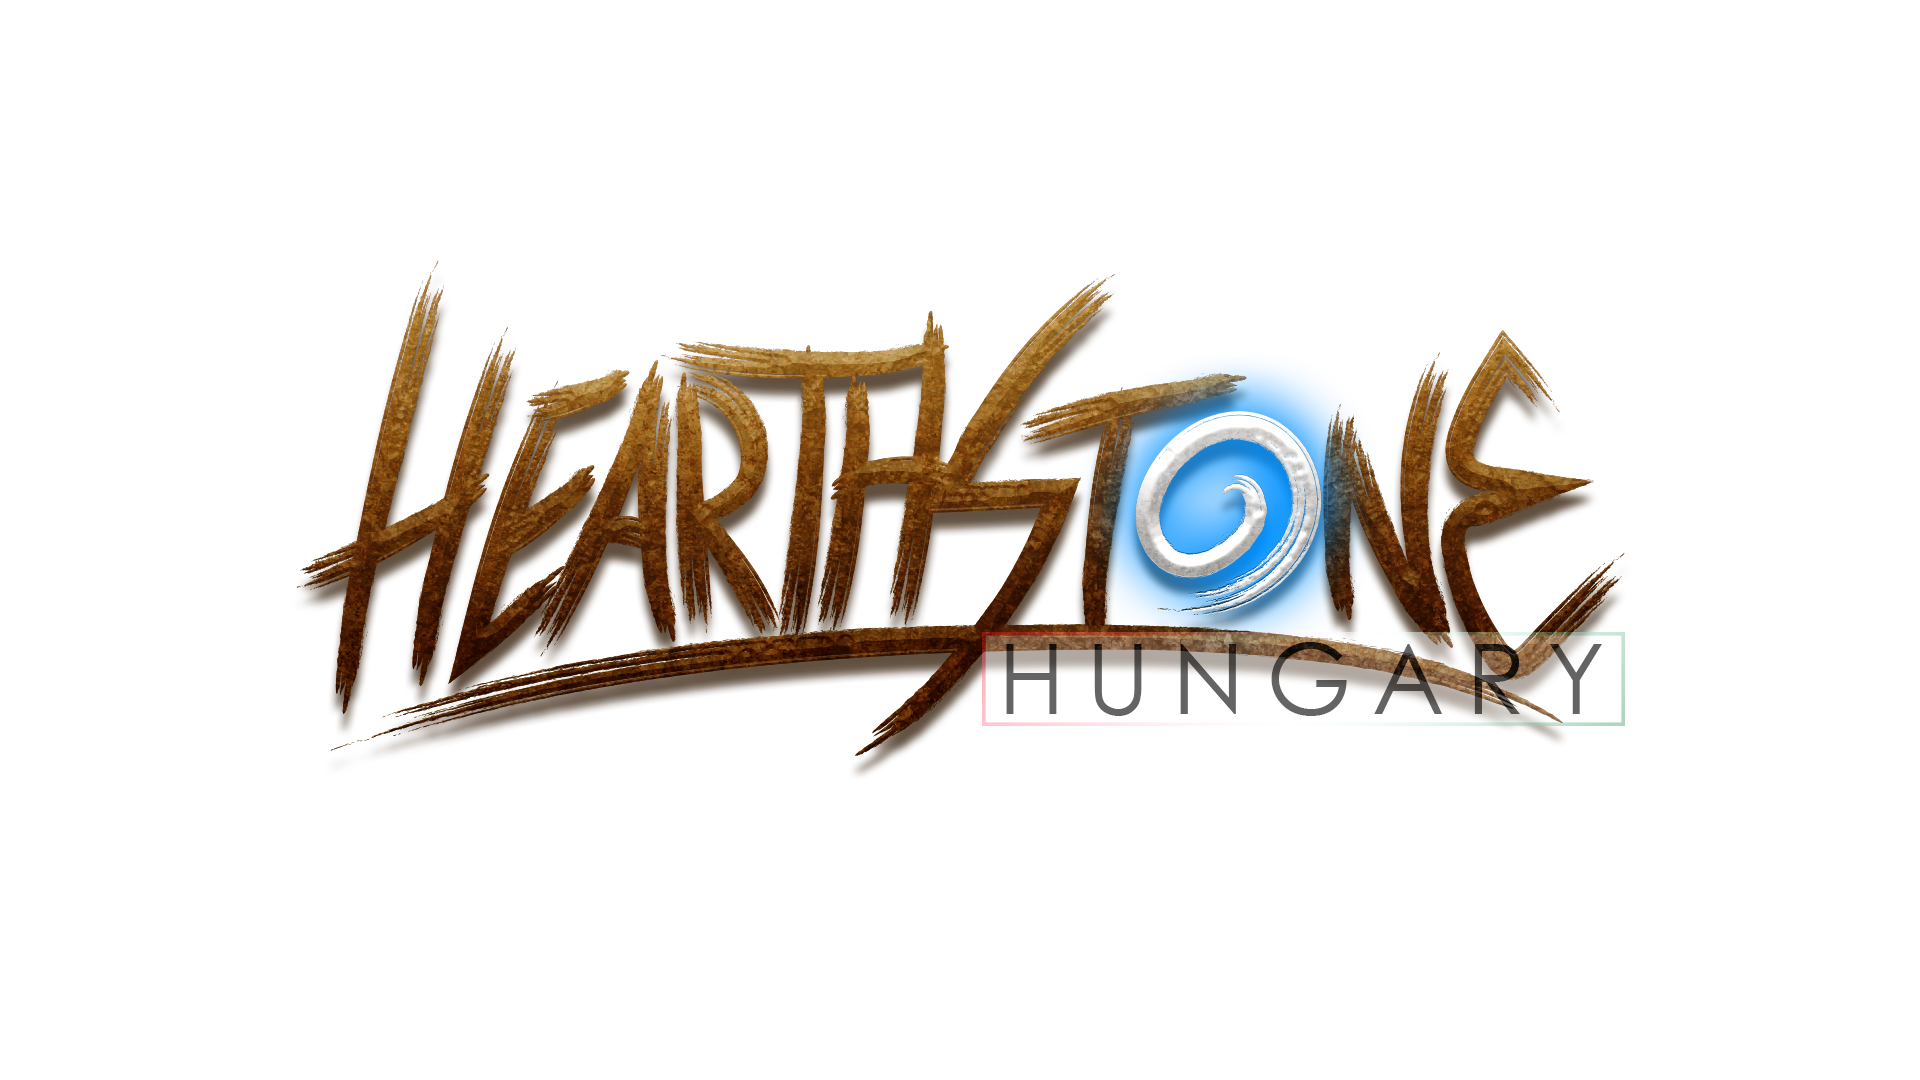 Hearthstone Hungary